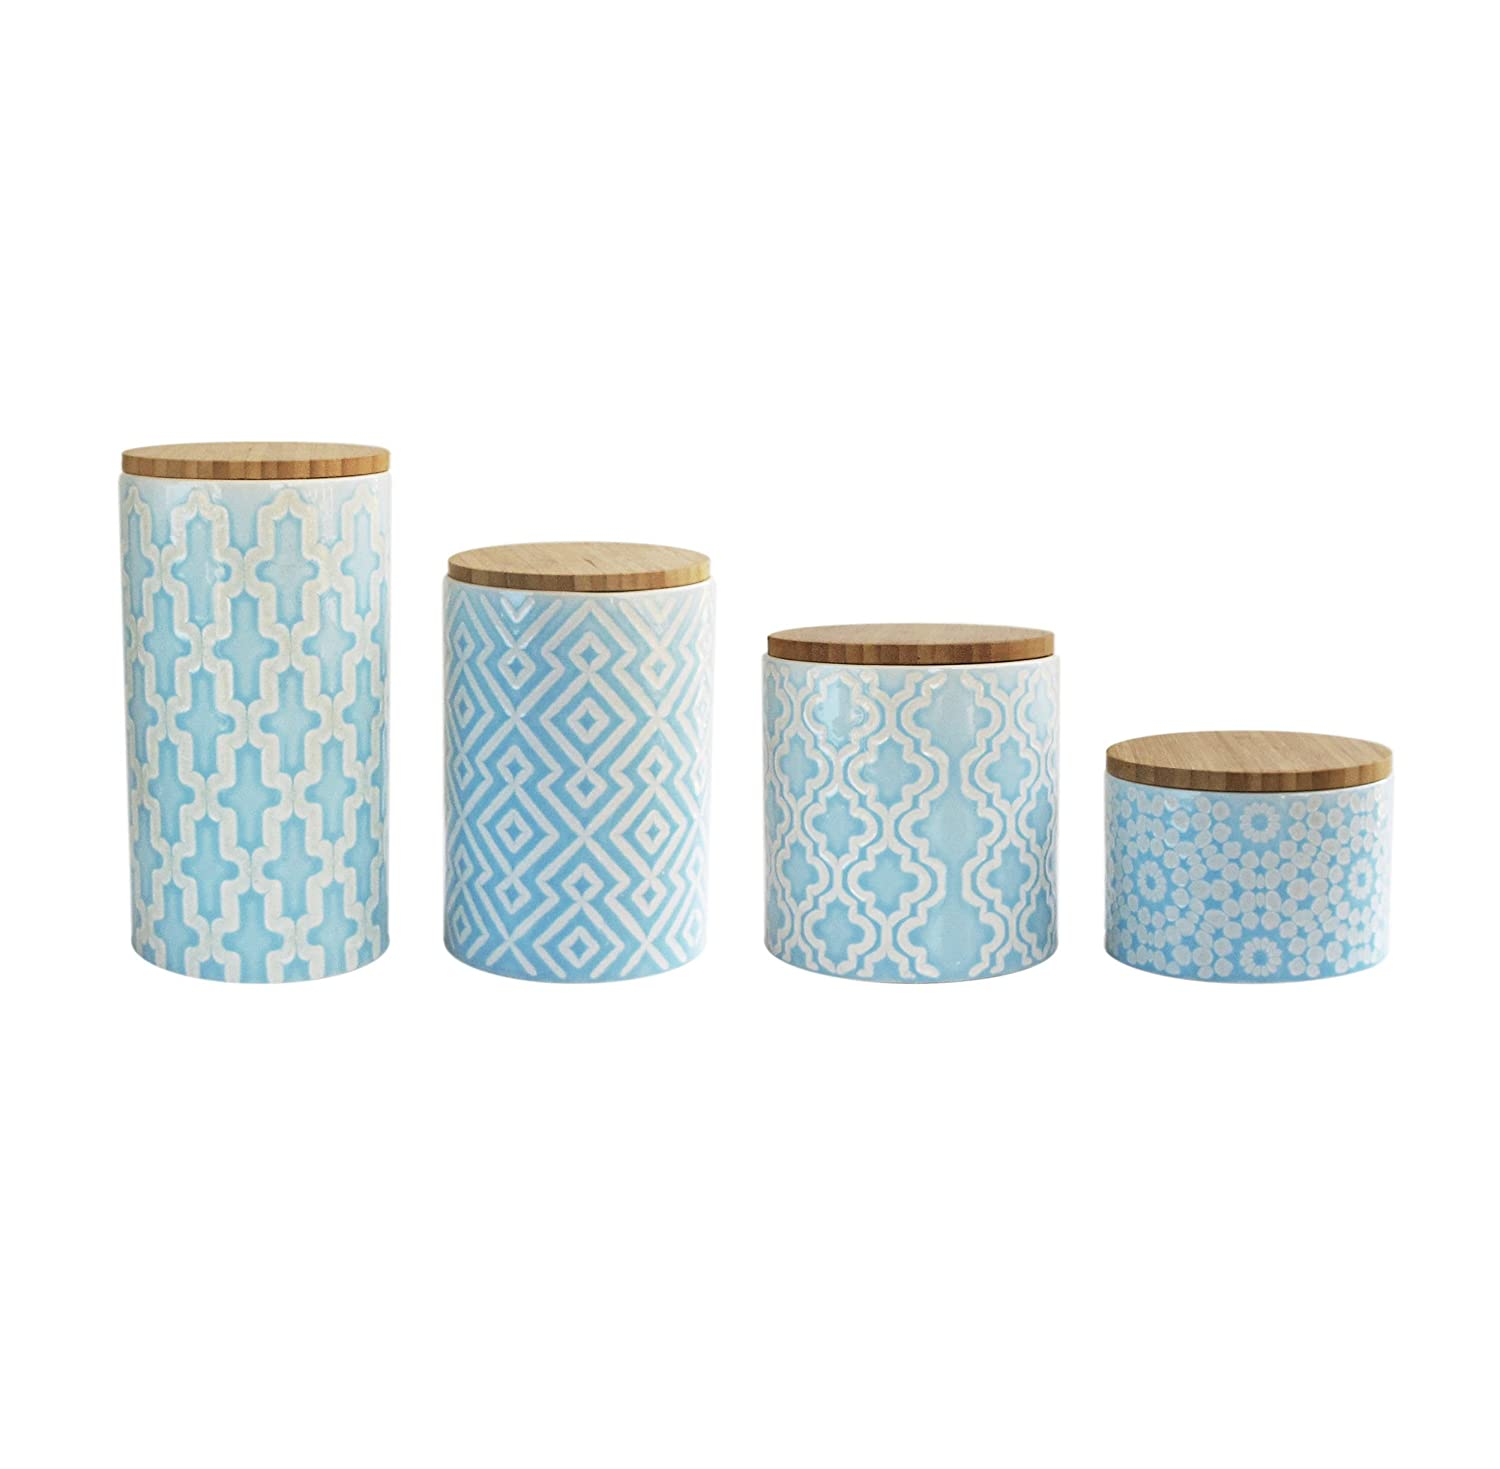 Amazon.com: American Atelier 6294-CAN Arabesque Canister Set, Blue ...